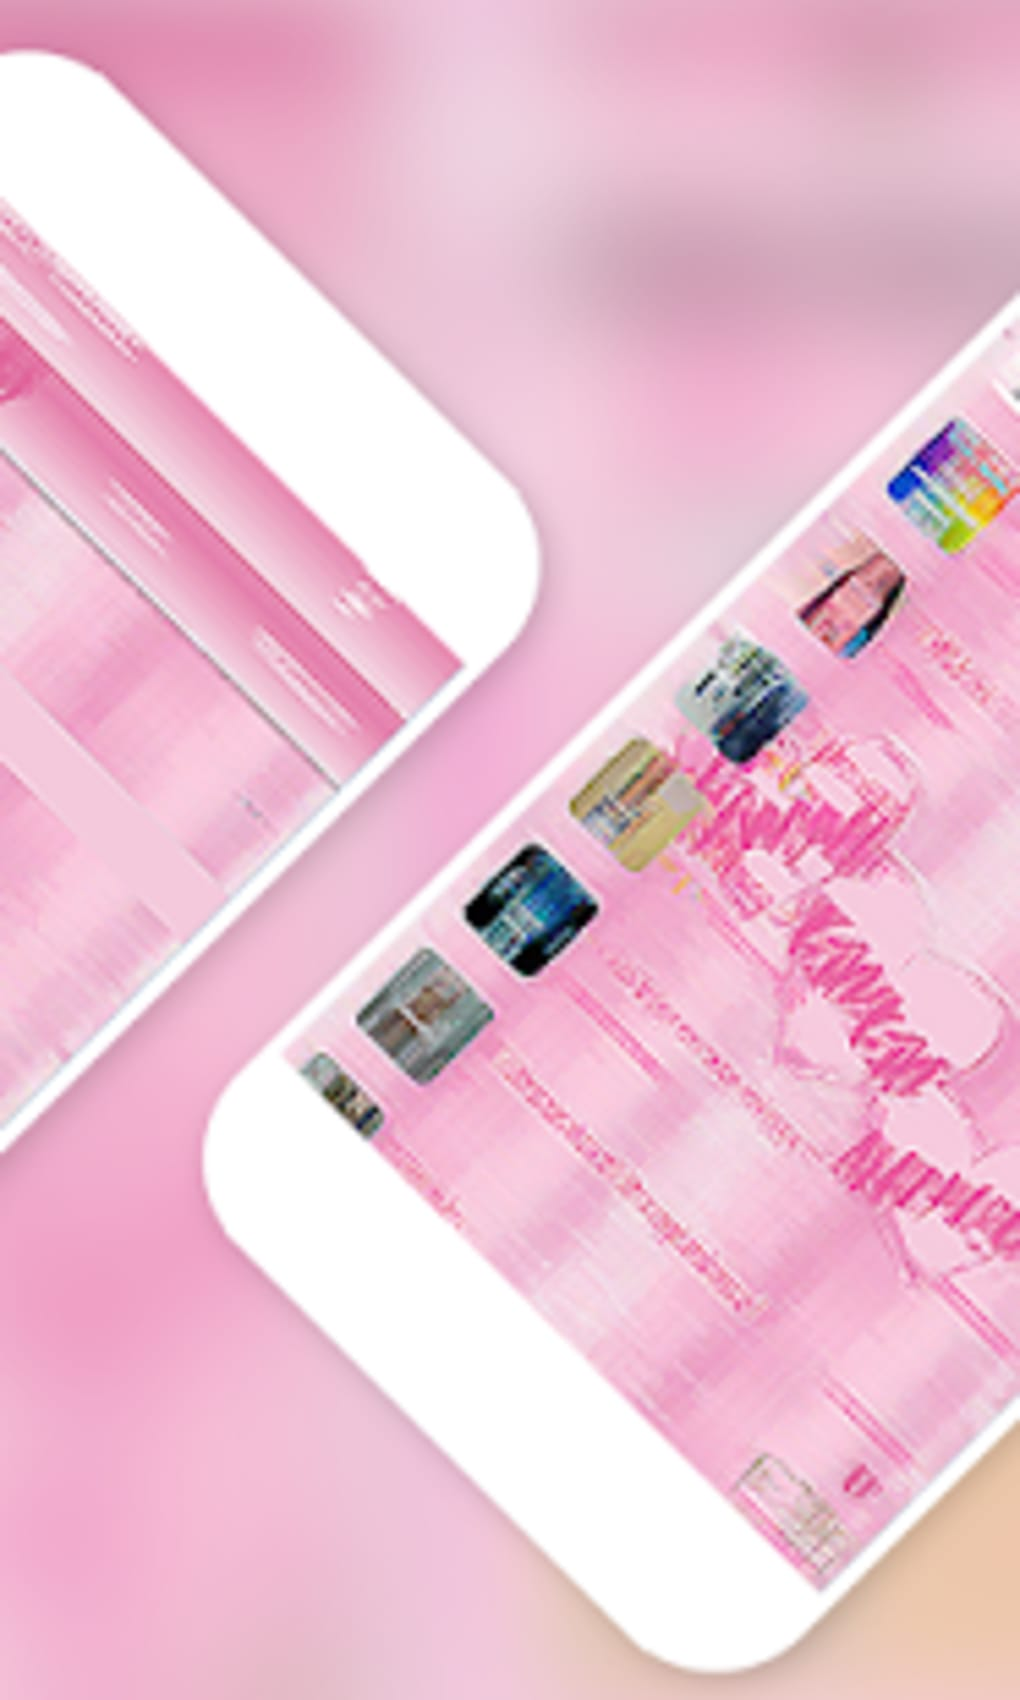 Tema Wa Pink Transparan Wallpaper Mobile Phone 86378 Hd